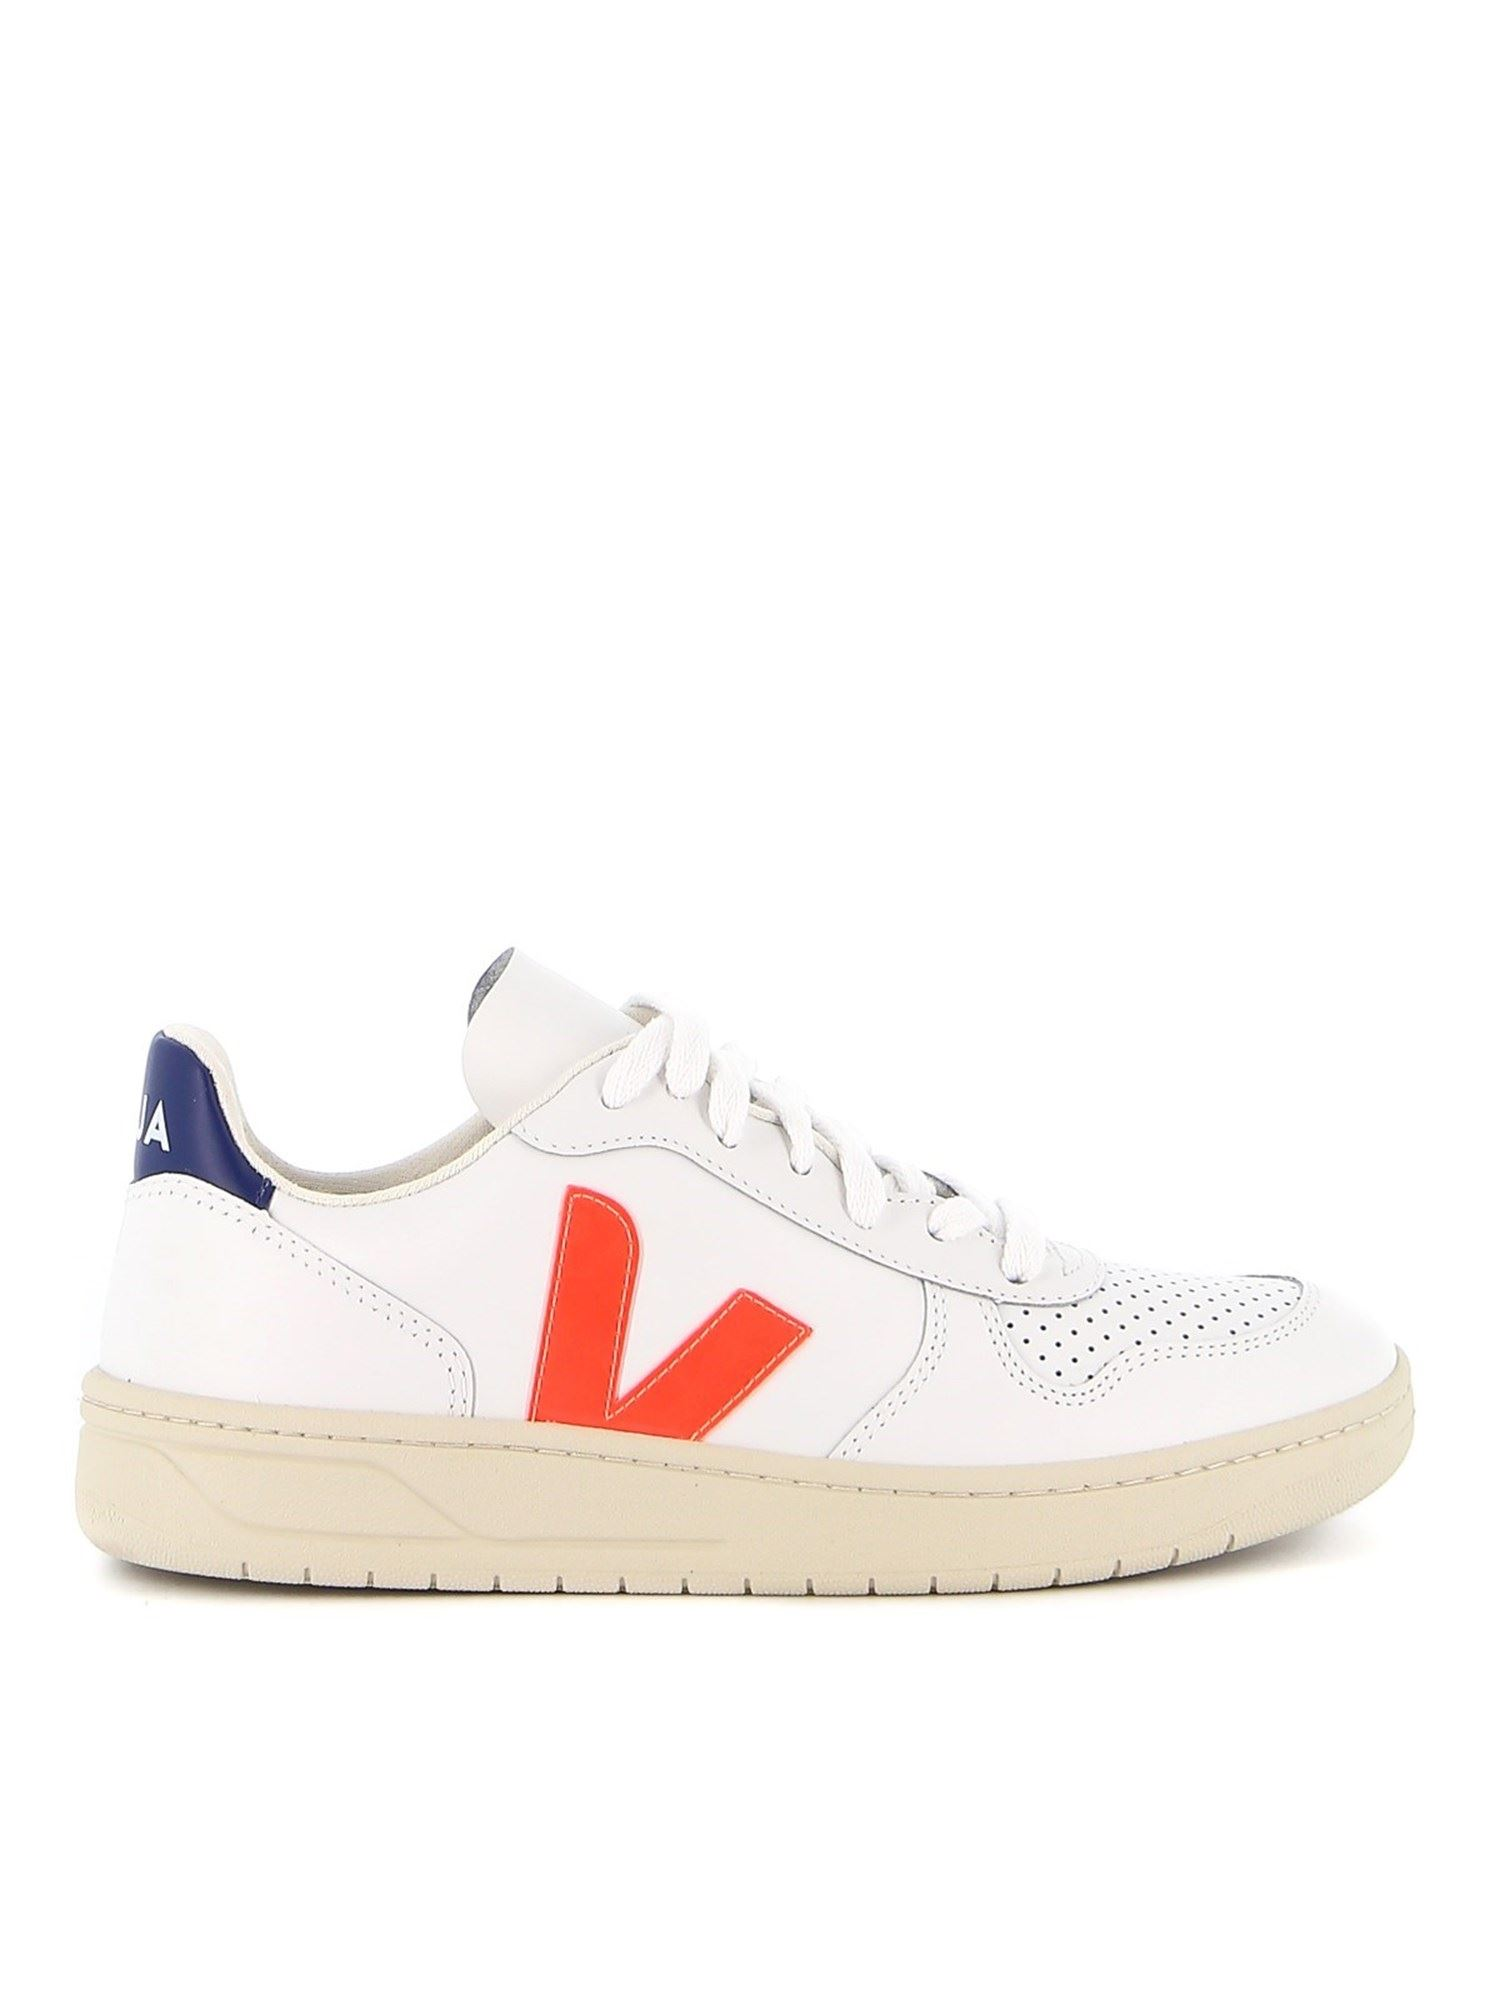 Veja Leathers V-10 NEON DETAILED SNEAKERS IN WHITE